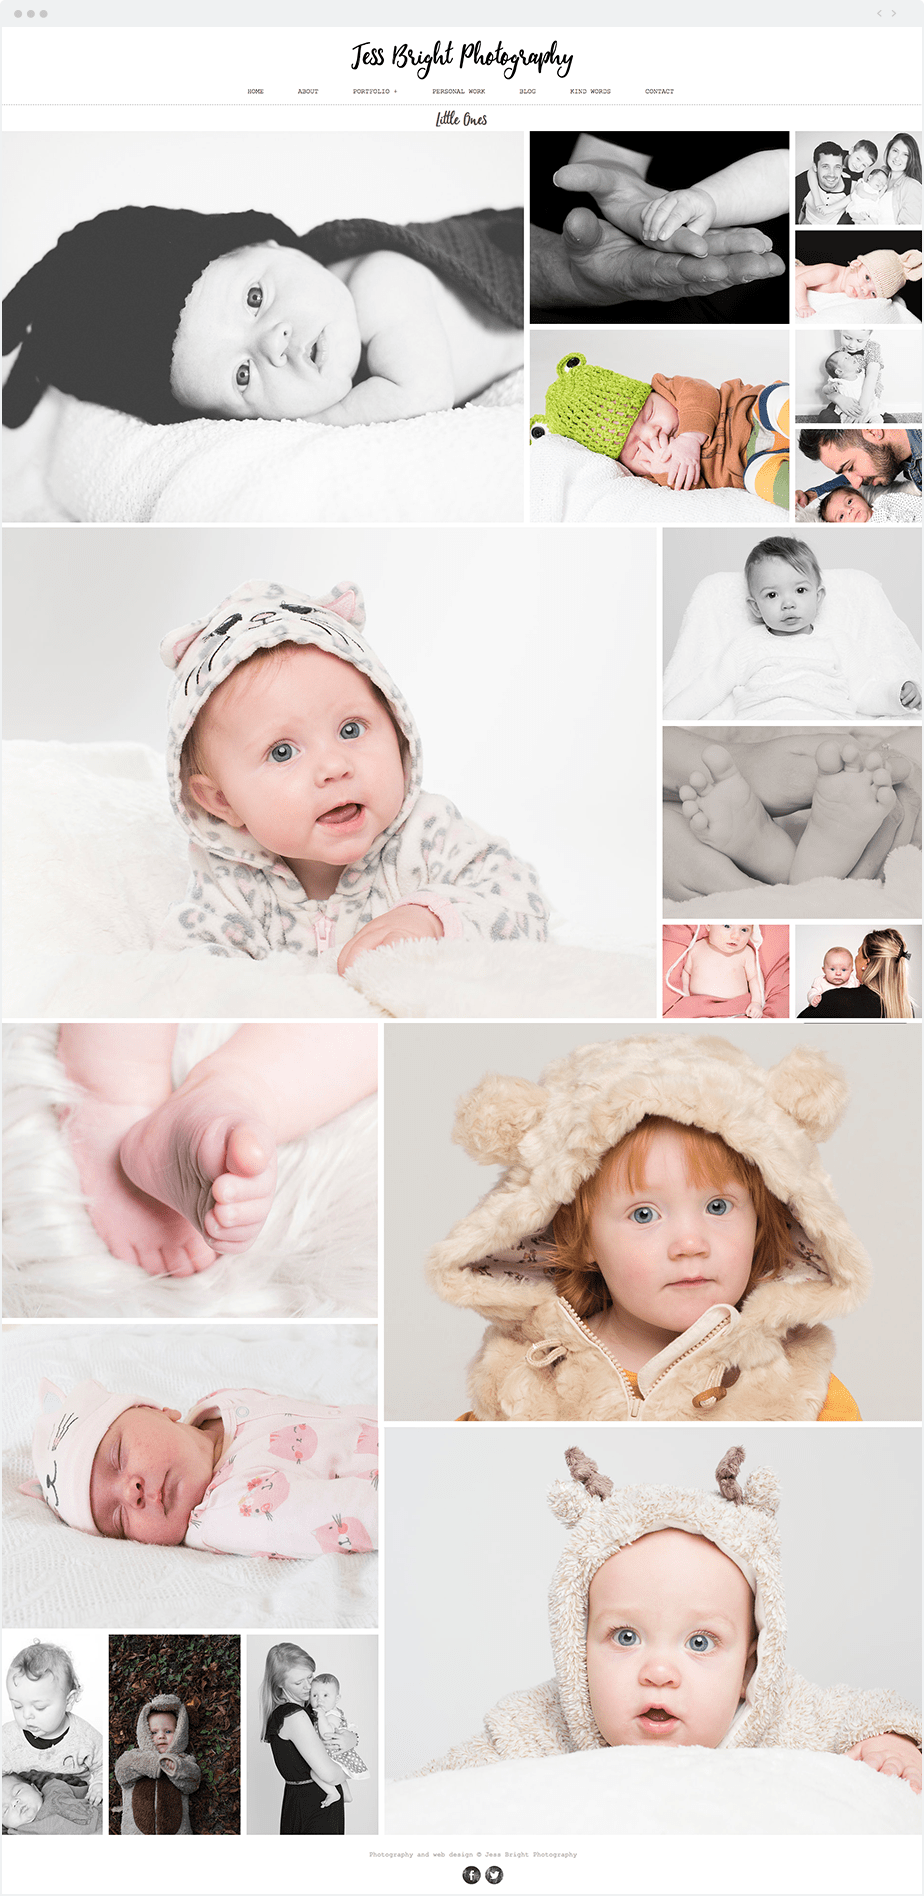 Beautiful Wix photography website by newborn and maternity photographer Jess Bright